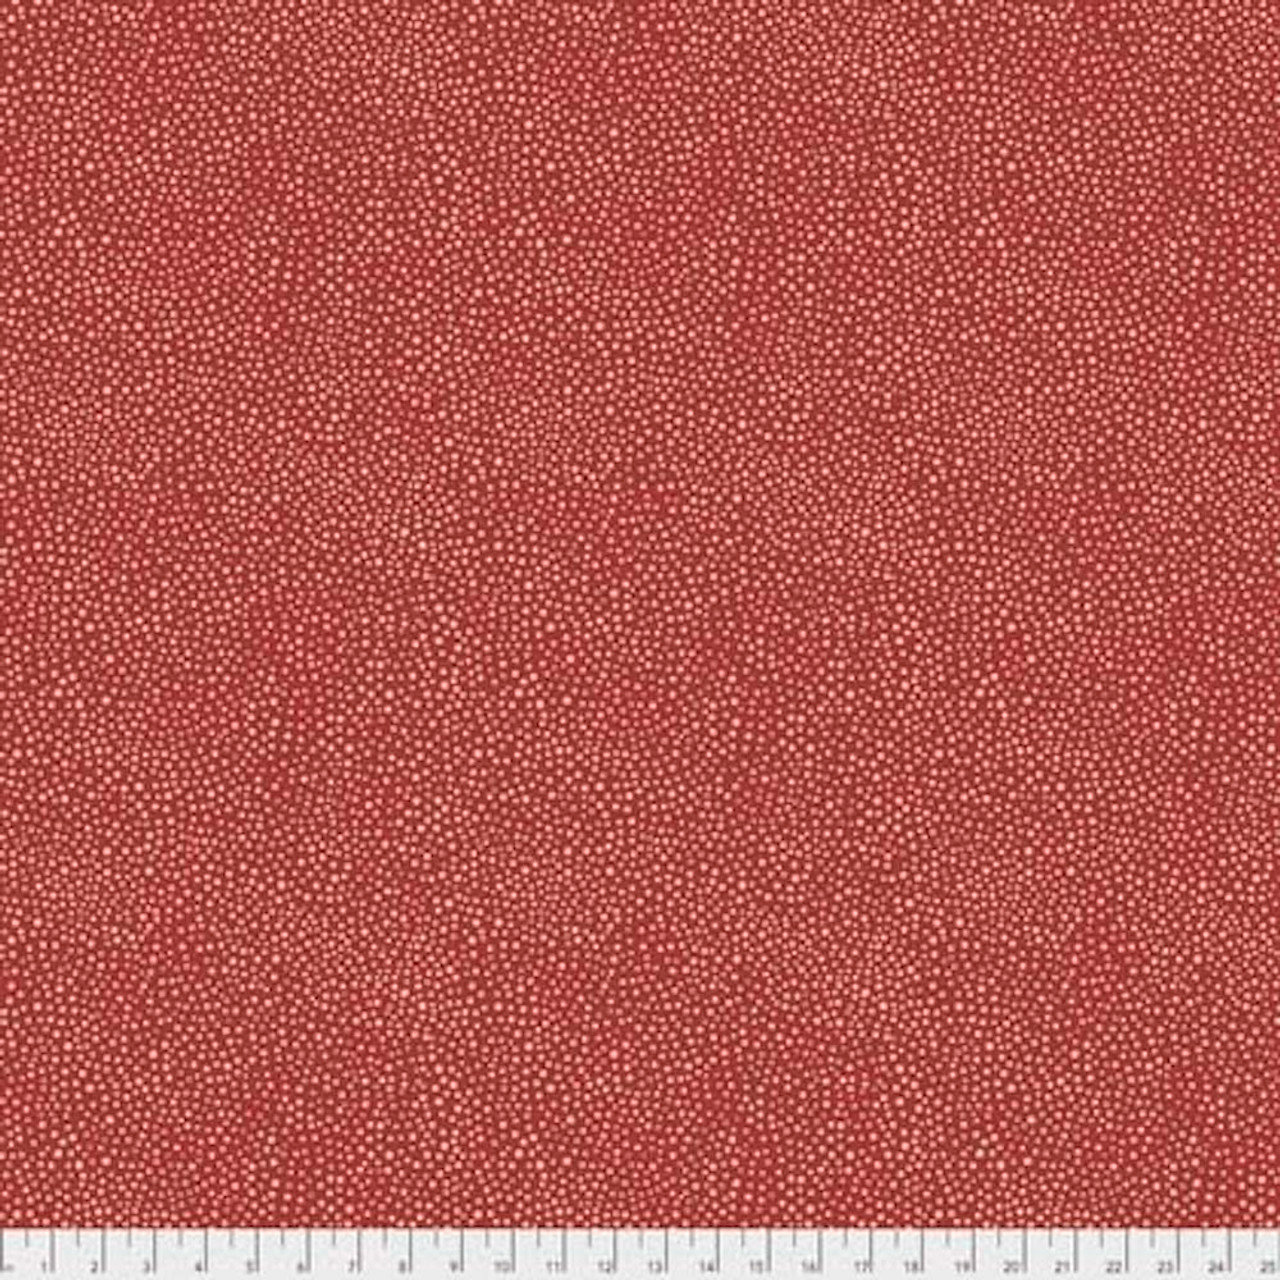 Morris & Co. Kelmscott PWWM008 Seaweed Dot Red Cotton Fabric By Yd